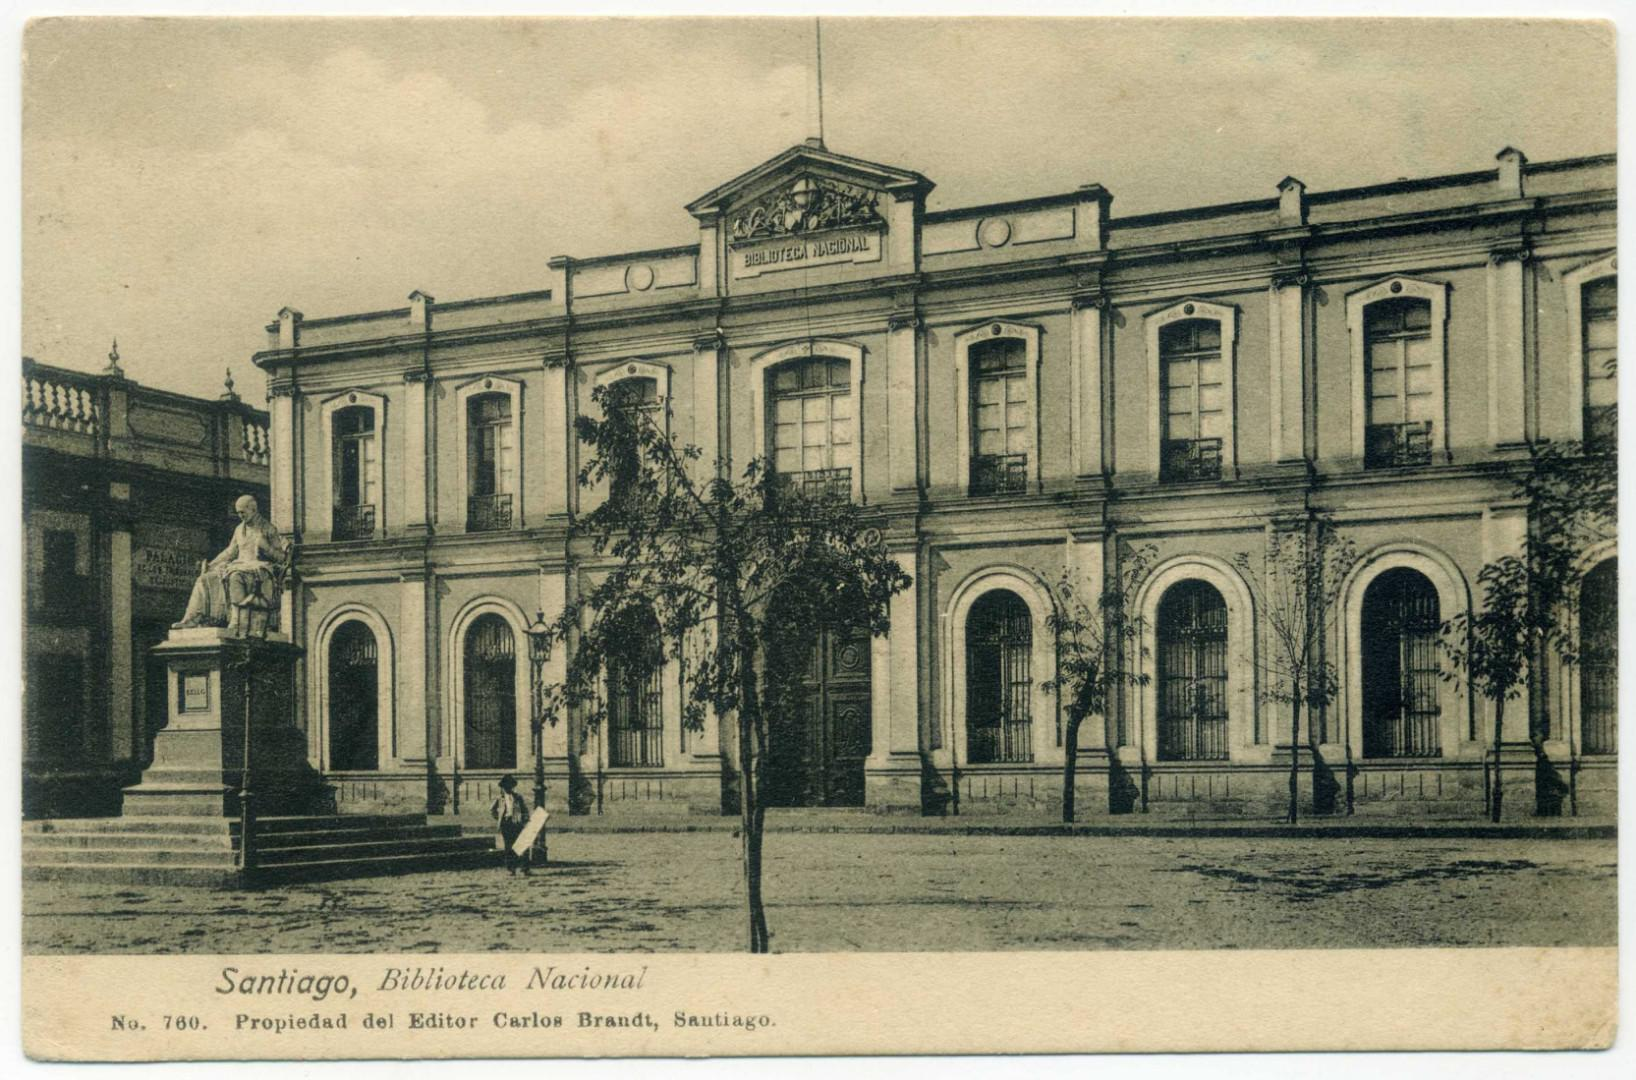 Santiago de Chile: Nationalbibliothek (ca. 1900)